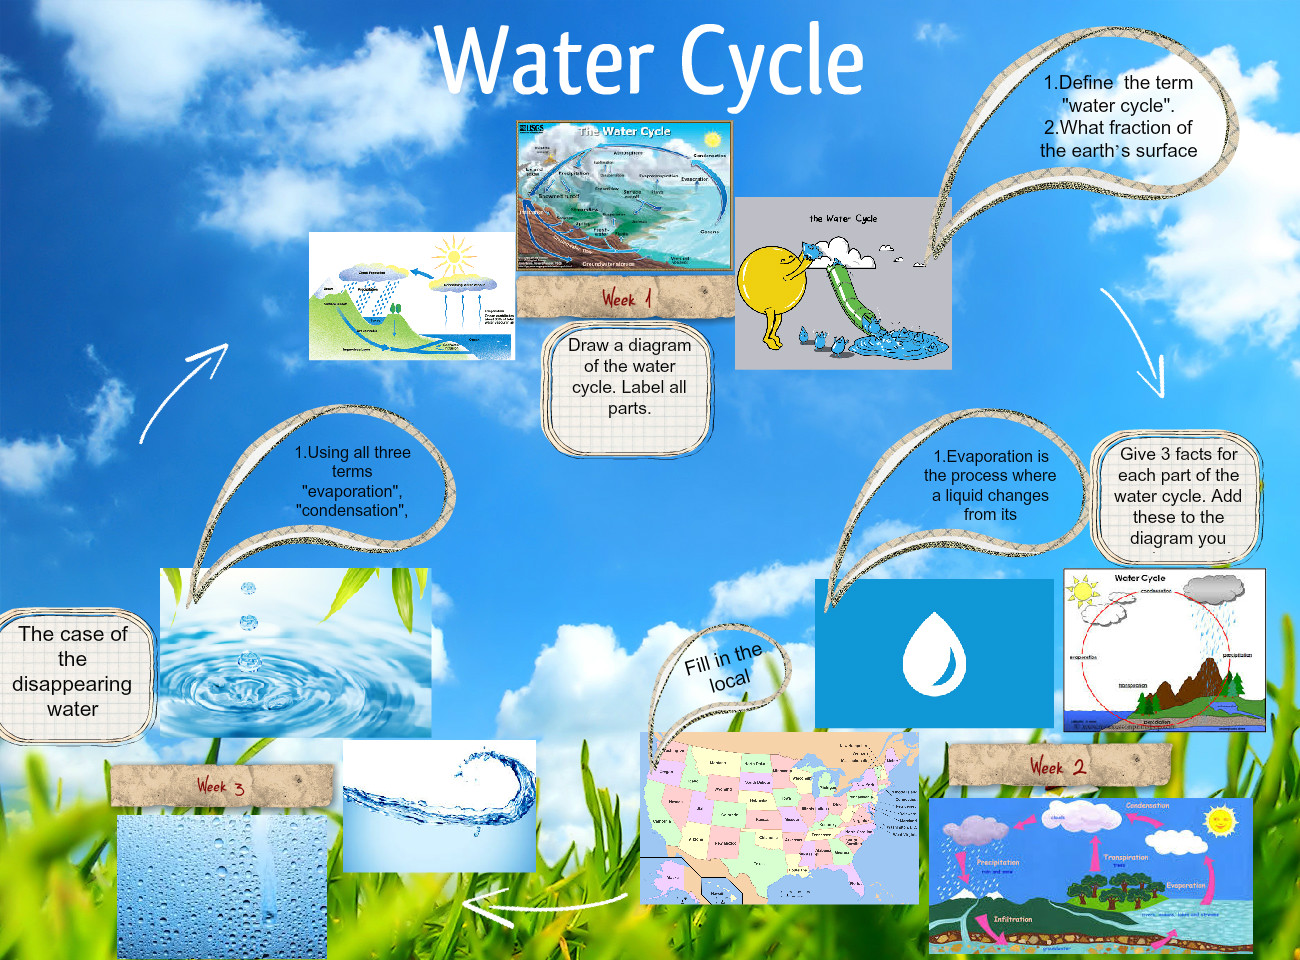 hight resolution of water cycle bug cycle life l fe life lyfecicle glogster edu interactive multimedia posters